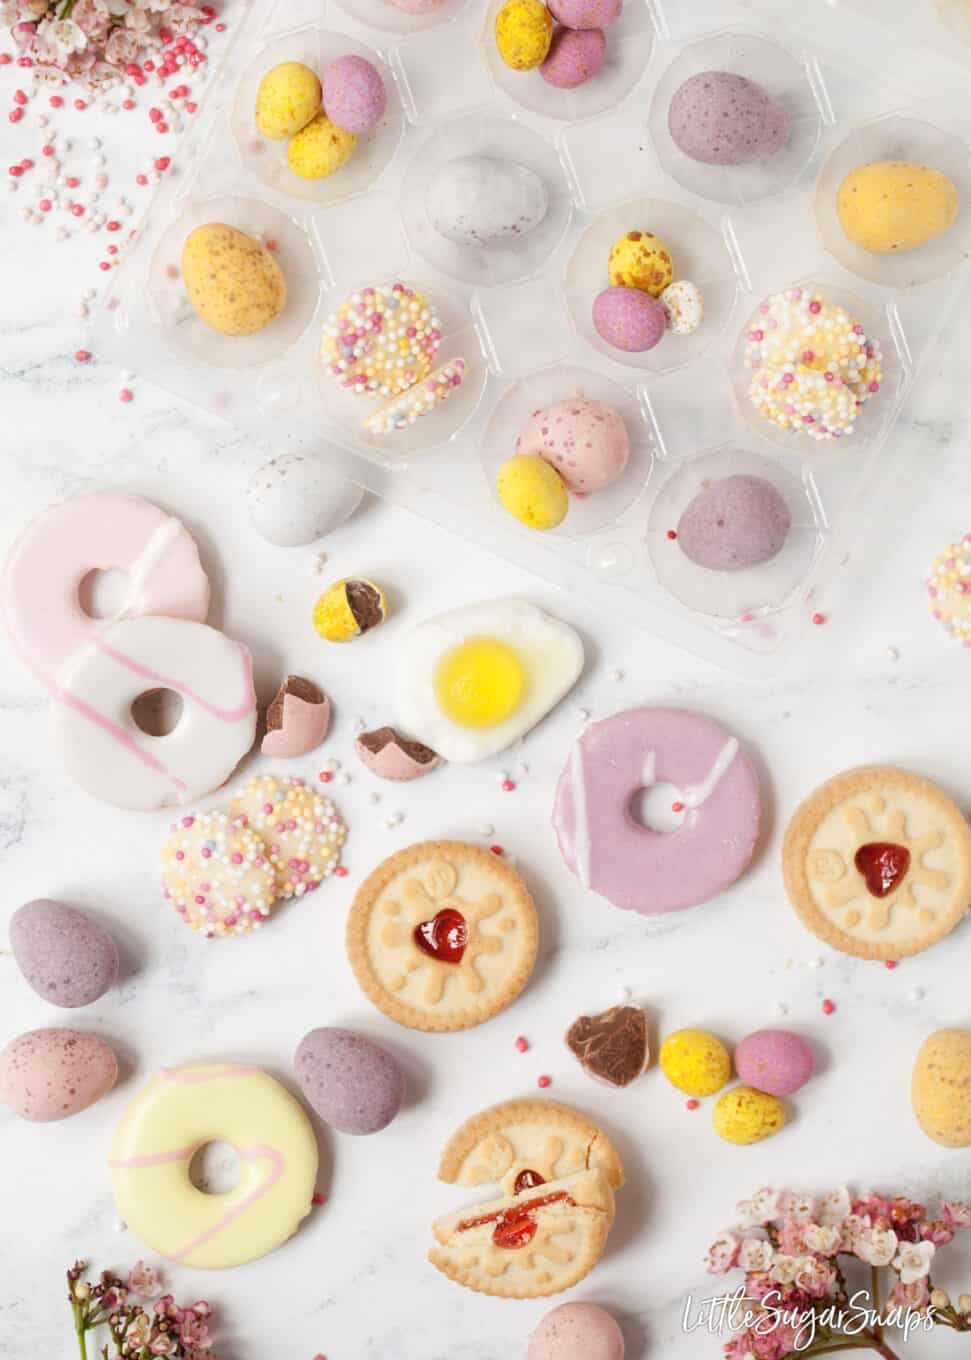 Miniature biscuits, chocolate eggs and sprinkles on a marble table top assembled for a homemade easter egg recipe